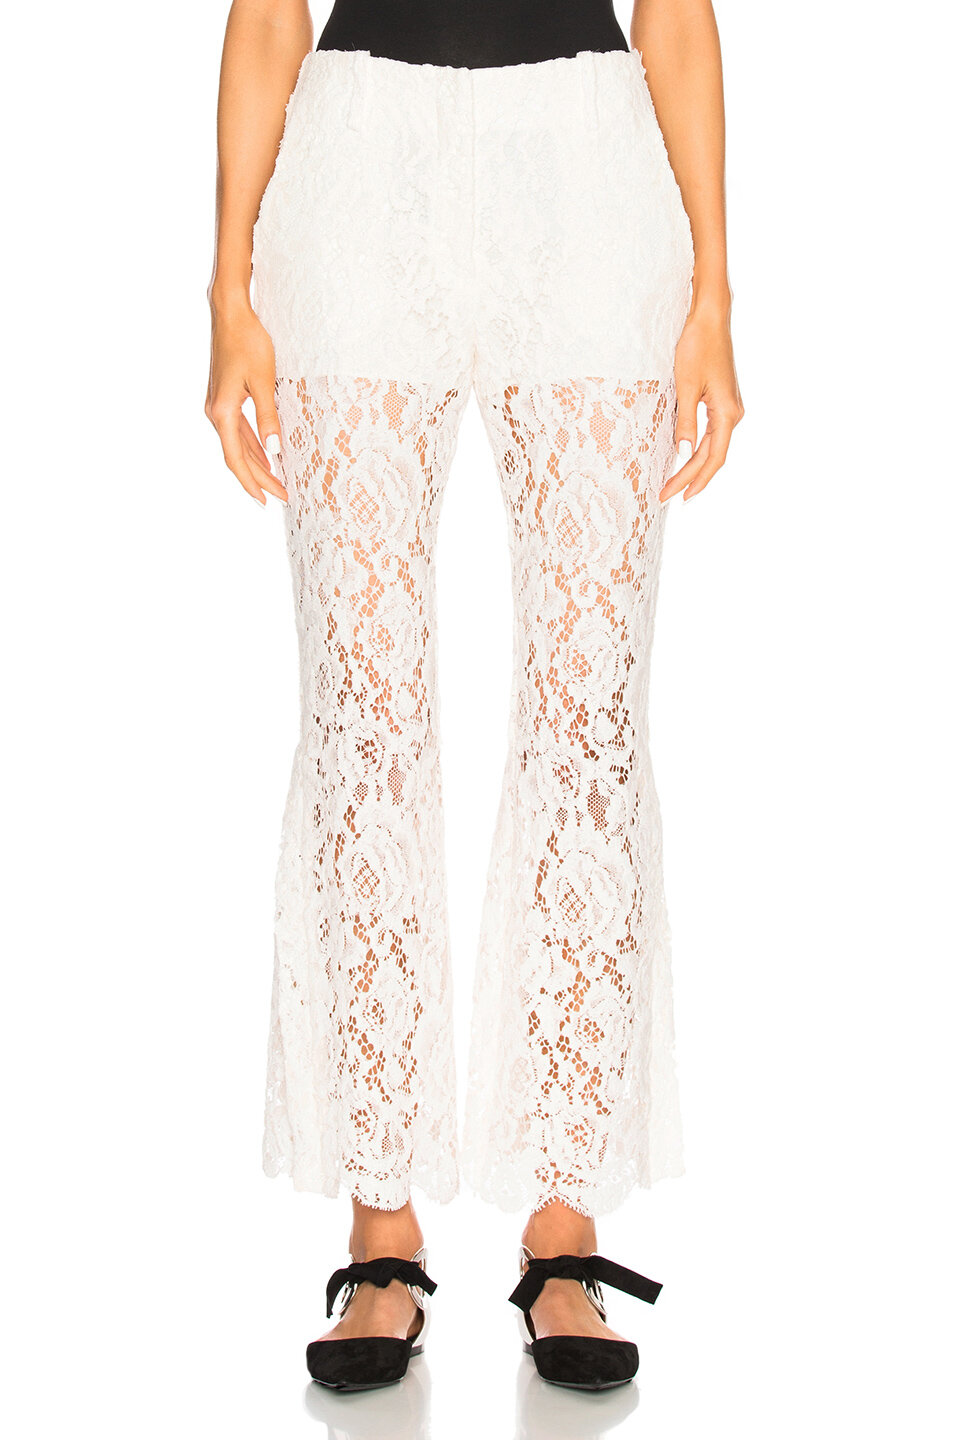 Proenza Schouler Lace Pants, shop similar  here ,  here ,  here  and  here .